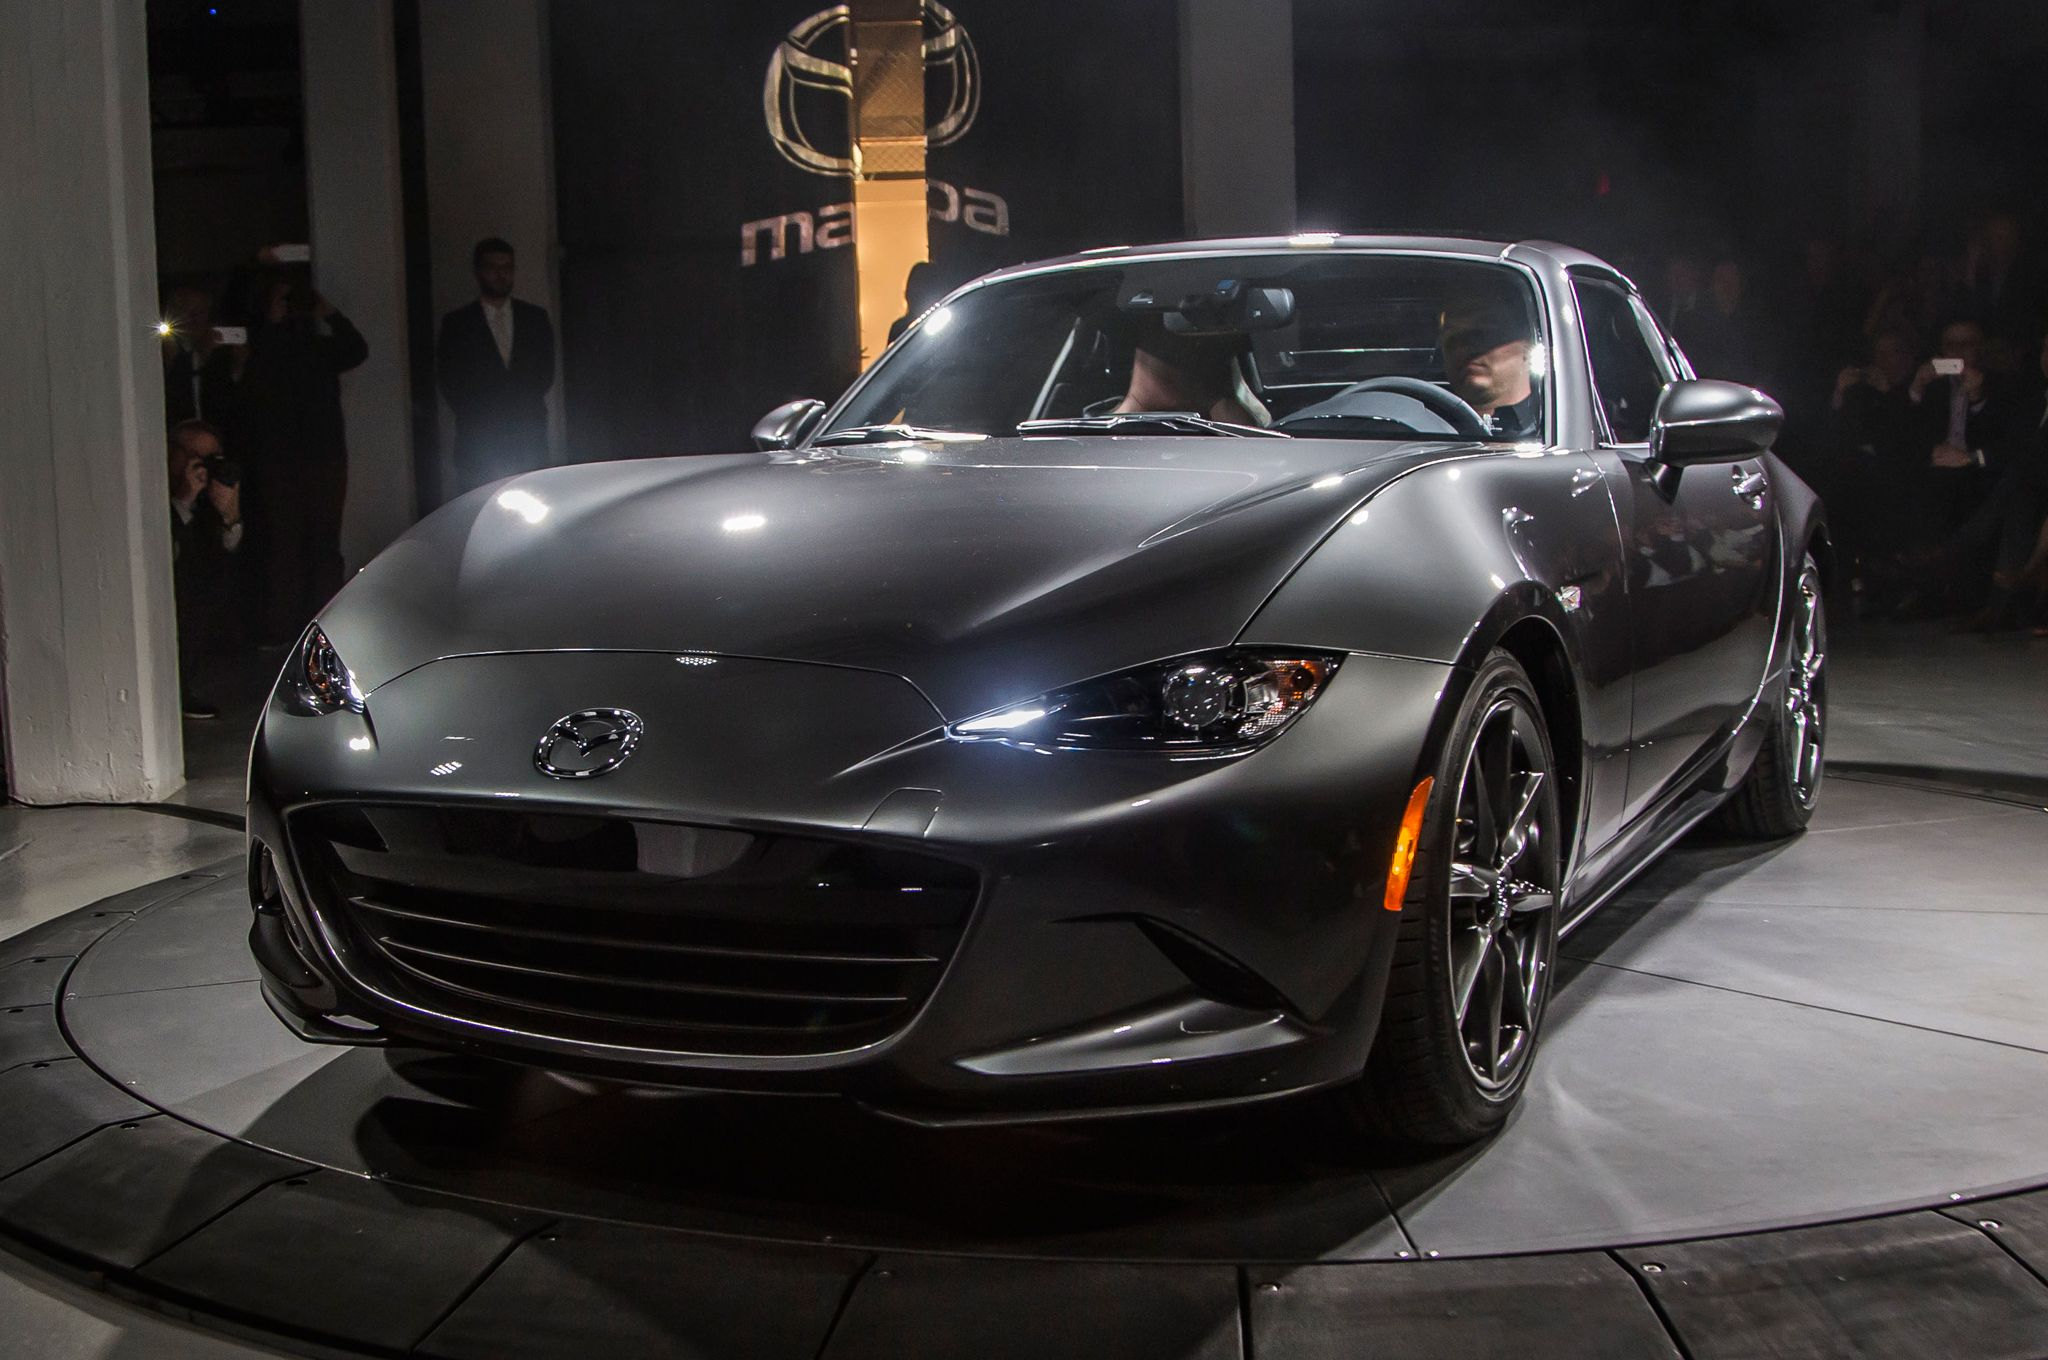 5 coolest things about the 2017 mazda mx 5 miata rf cool cars 5 coolest things about the 2017 mazda mx 5 miata rf fandeluxe Choice Image